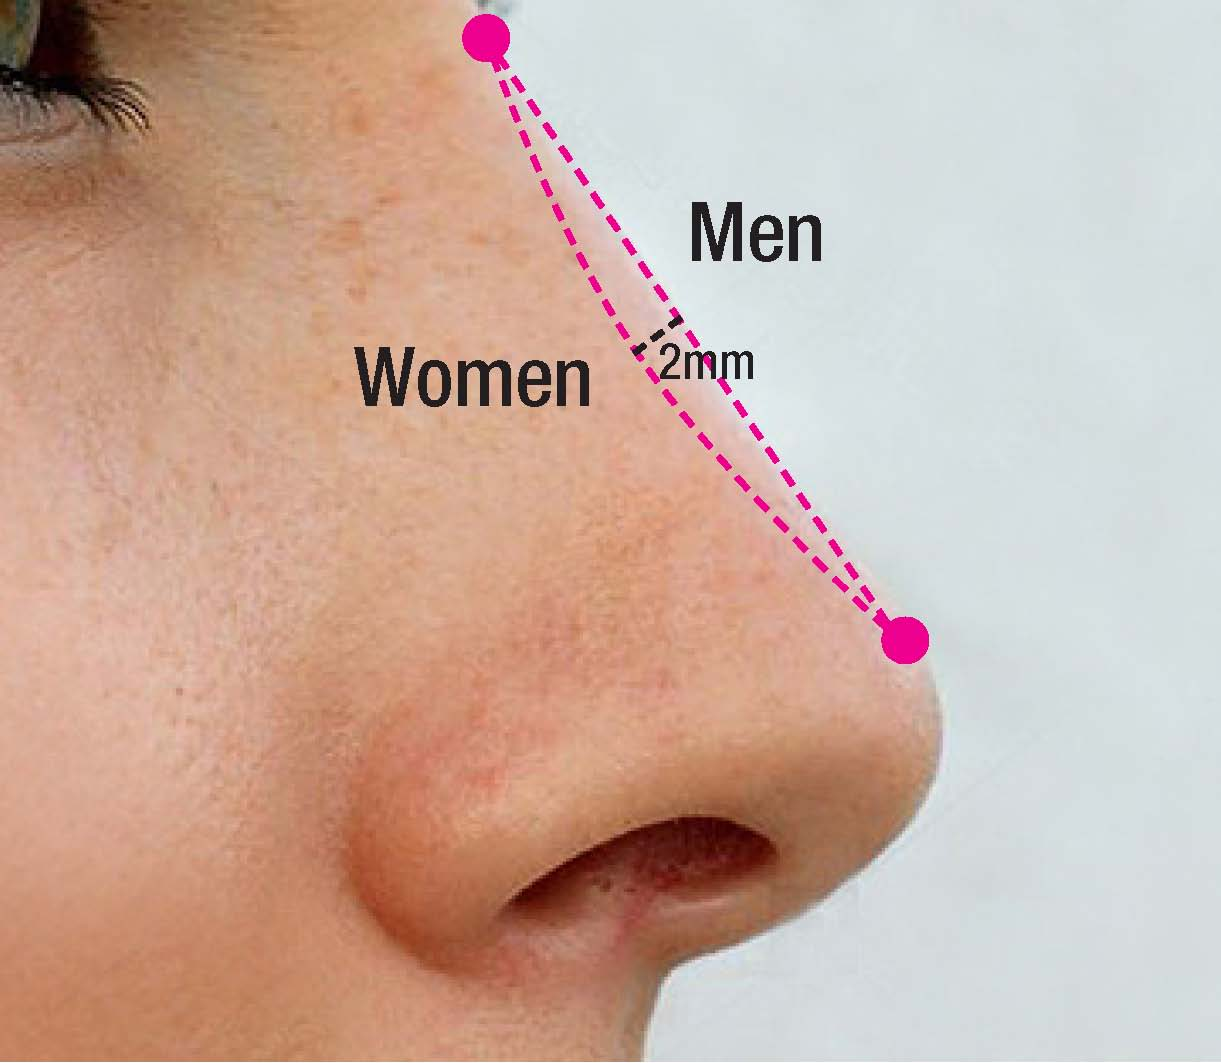 Plastic And Cosmetic Surgery: The Science Of Beauty